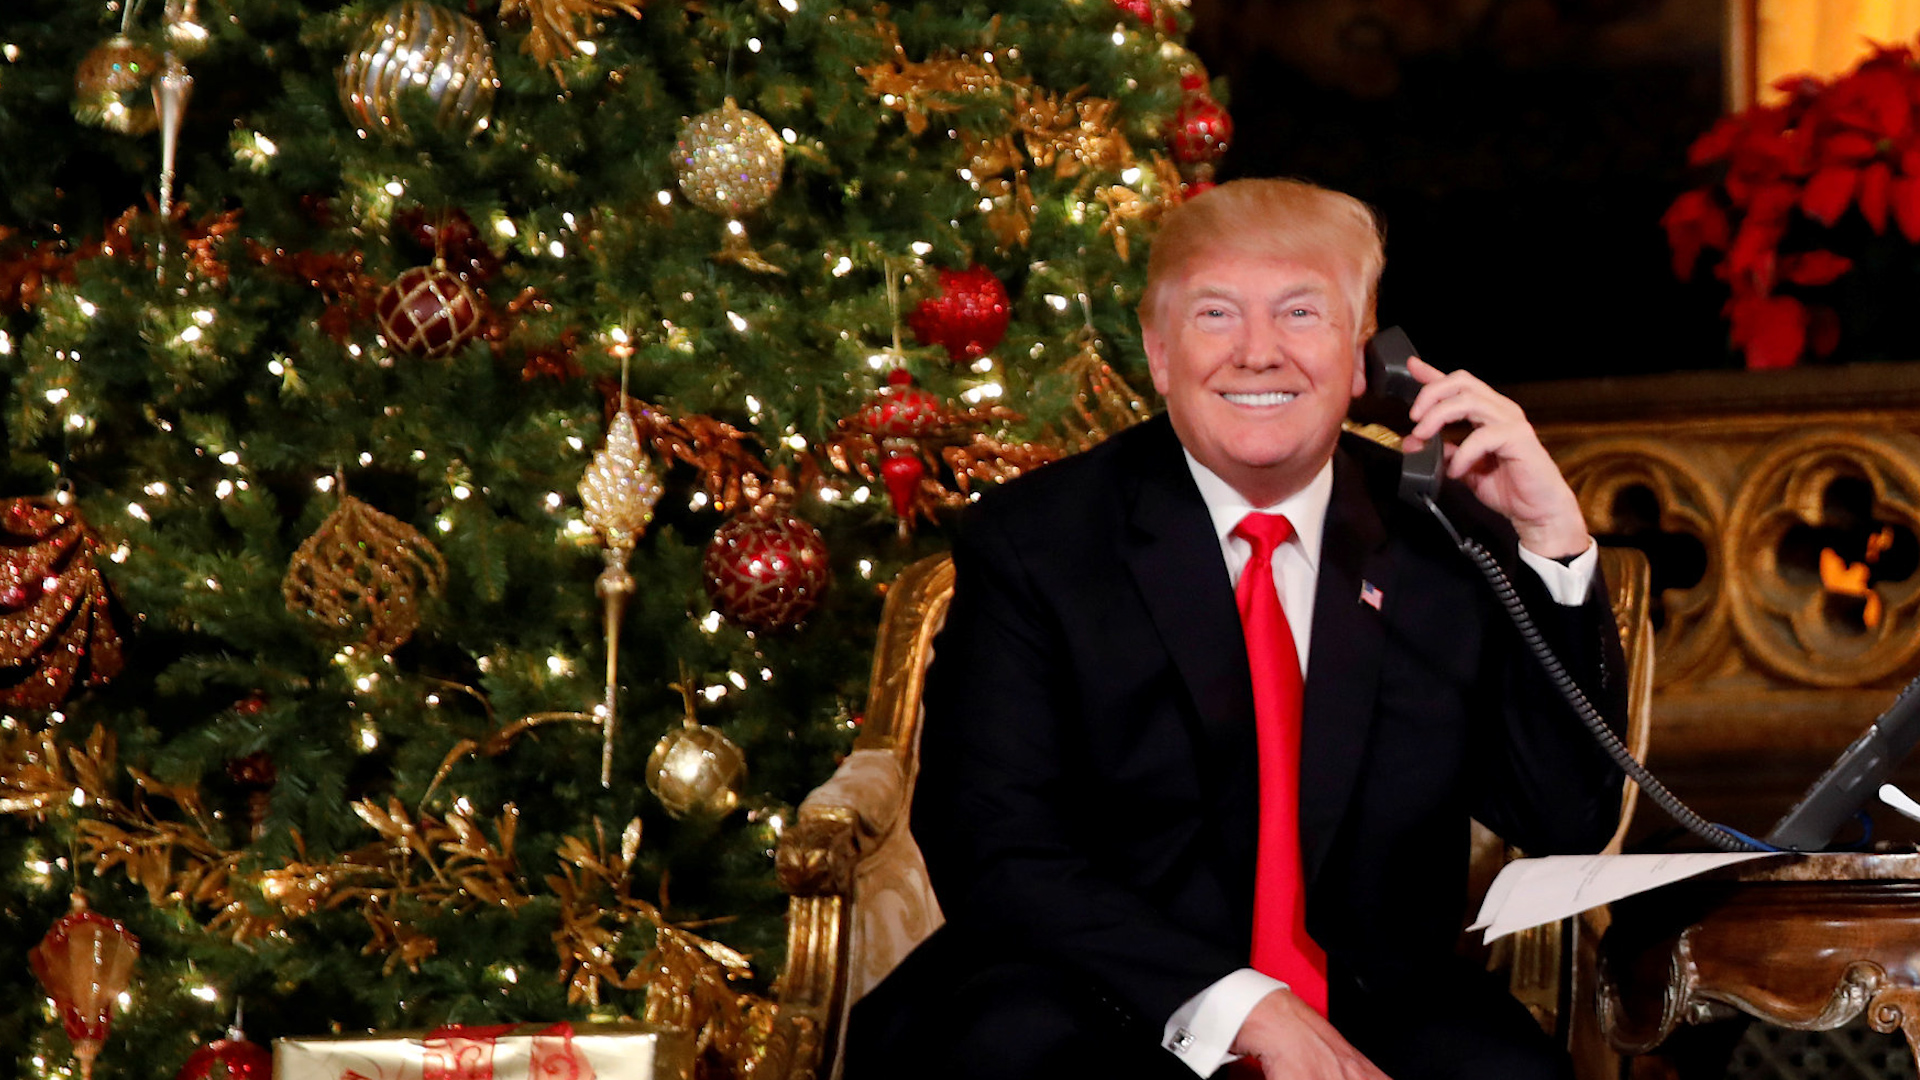 Trump Christmas.President Trump Takes Santa Calls From Children On A Gloomy Christmas Eve In D C